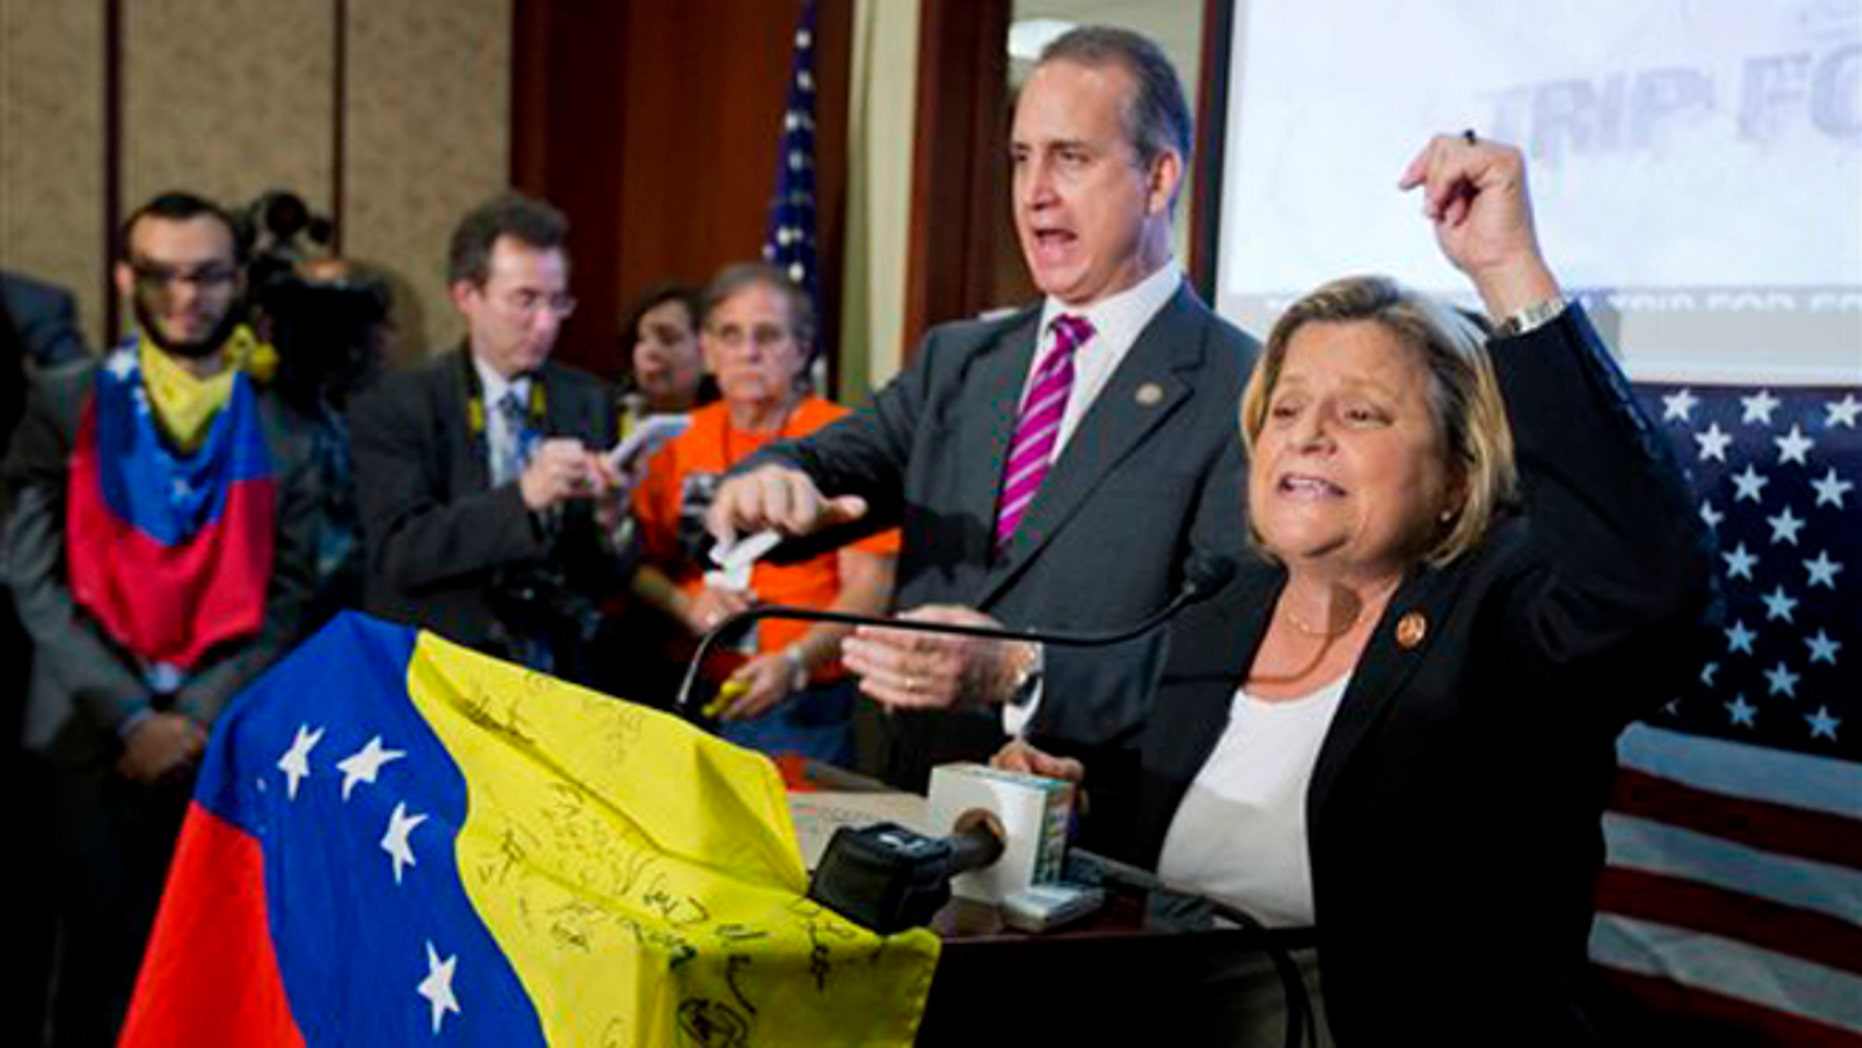 Rep. Ileana  Ros-Lehtinen, R-Fla., right, and Rep. Mario  Diaz-Balart, R-Fla., join Venezuelan-Americans gathered on Capitol Hill in Washington, Friday, May 9, 2014, to pressure the Obama administration to implement sanctions on the regime of Nicolas Maduro, the president of Venezuela. (AP Photo/Manuel Balce Ceneta)